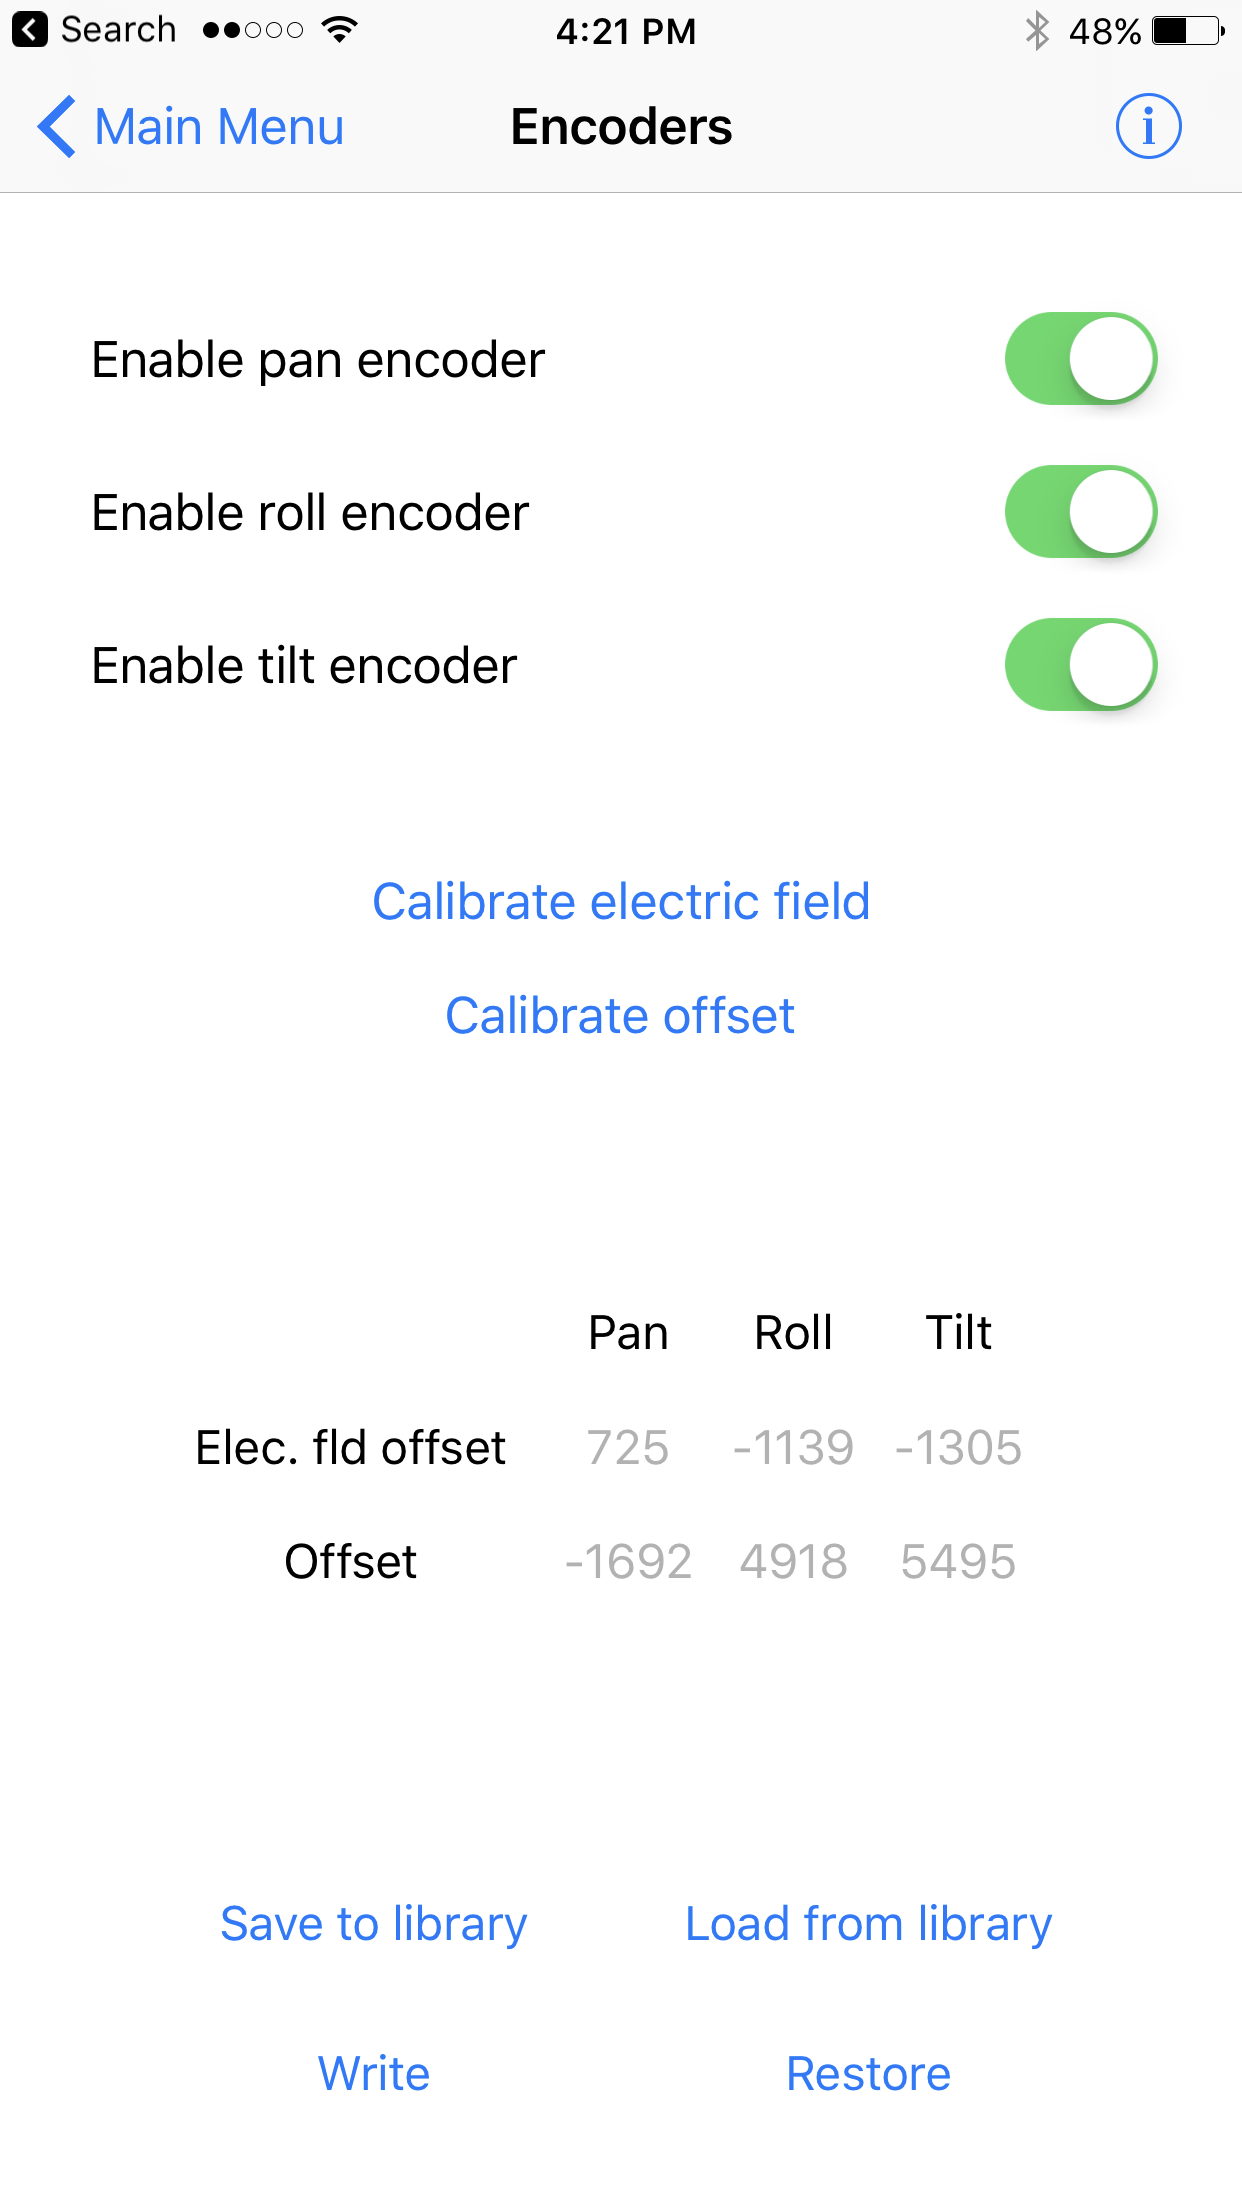 letus-helix-jr-encoders-camera-gimbal-pid-tuning-ios-app-save-encoders